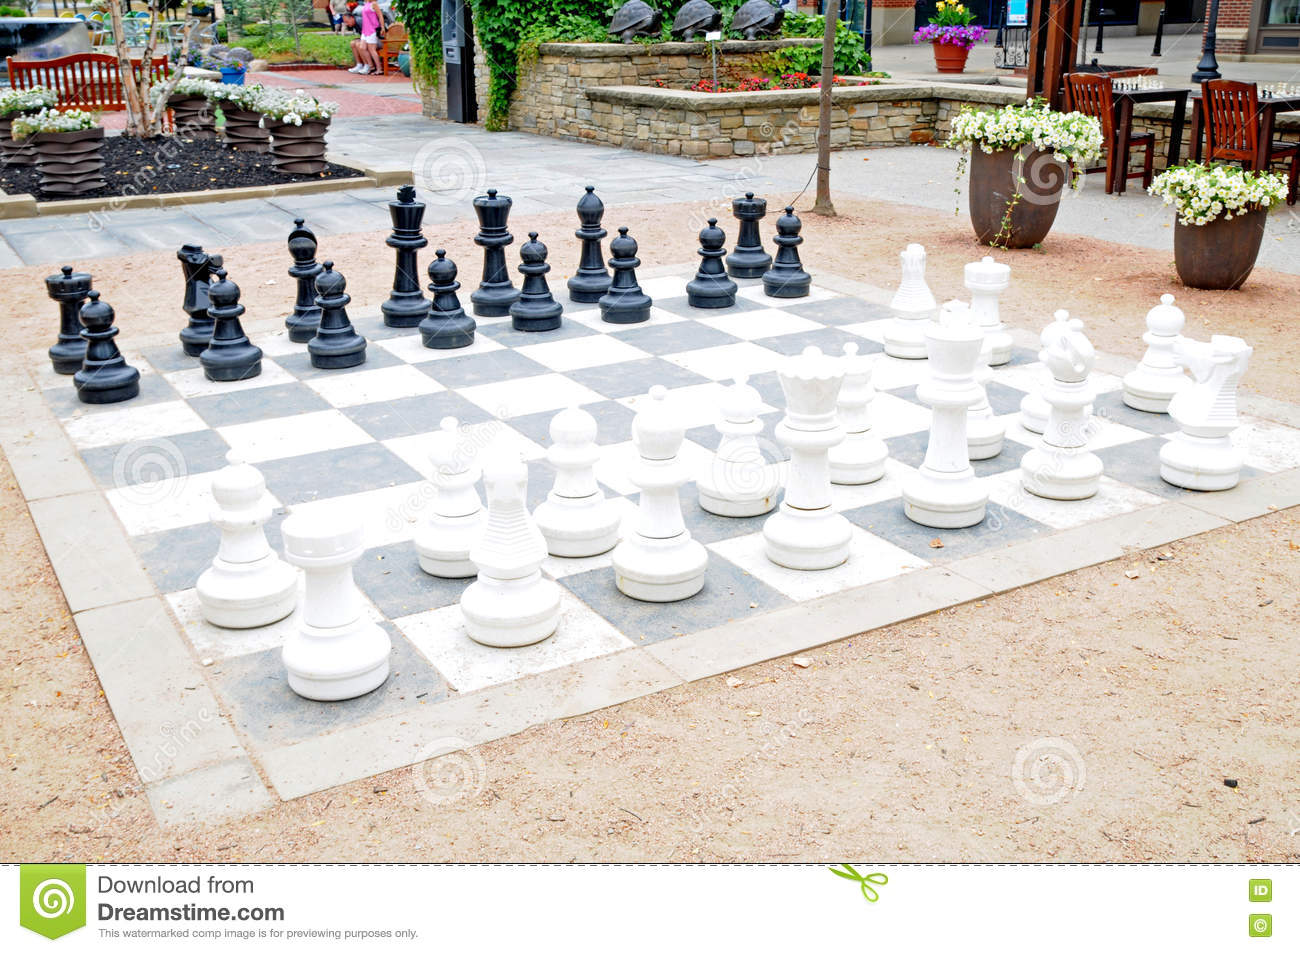 Exceptional Chess Image Large Patio Set ...